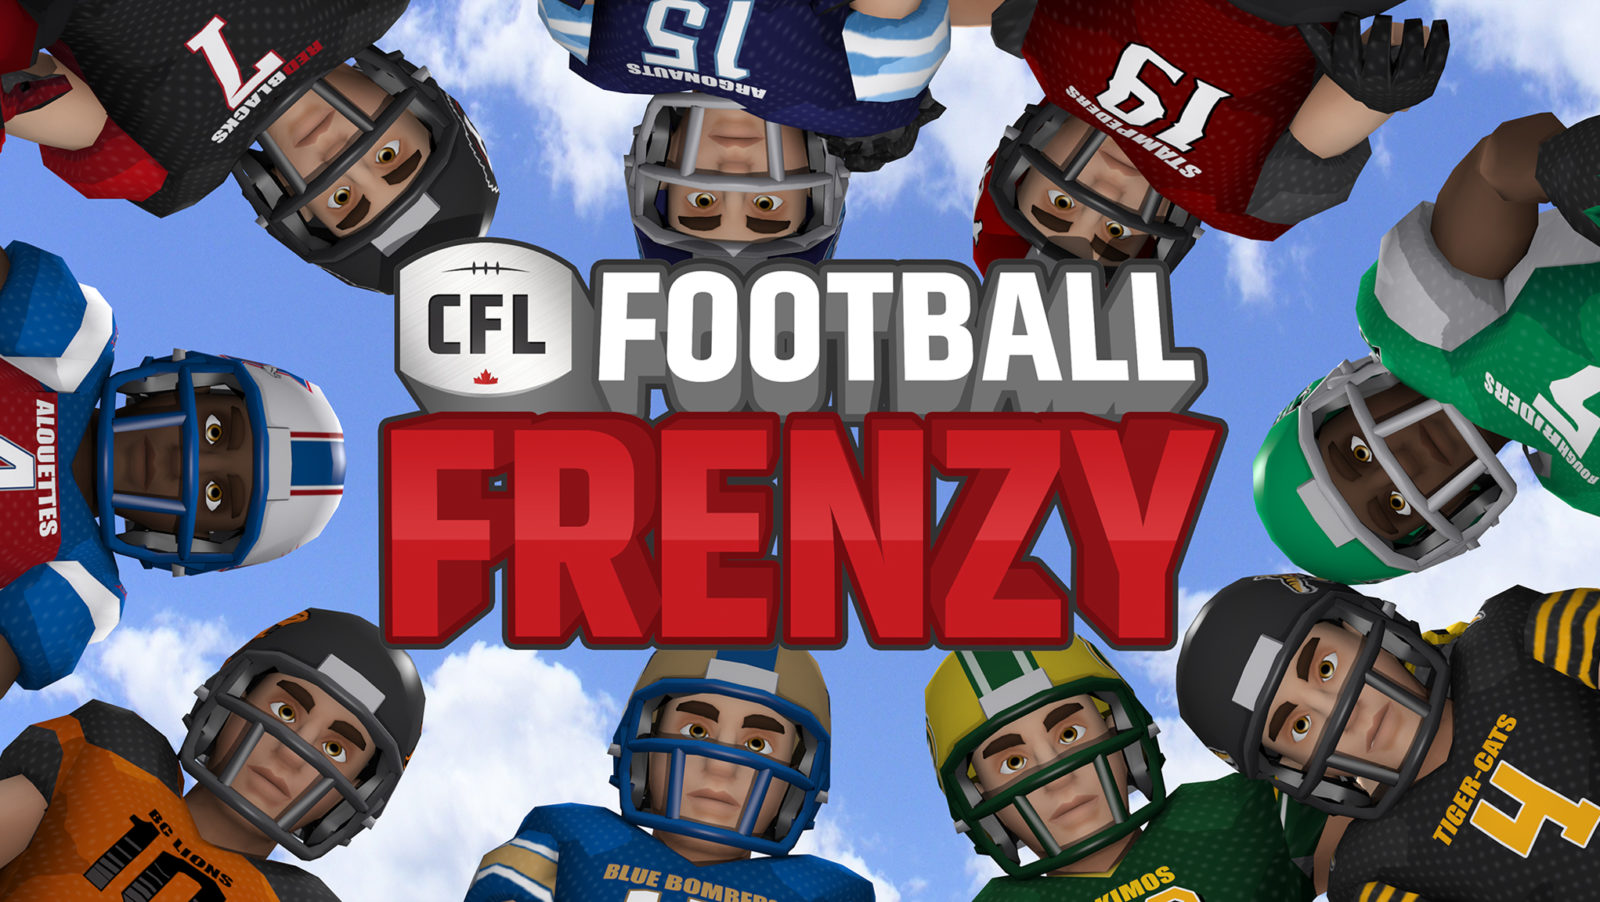 Cfl Football Frenzy Mobile Game Is A Must Download Cfl Ca